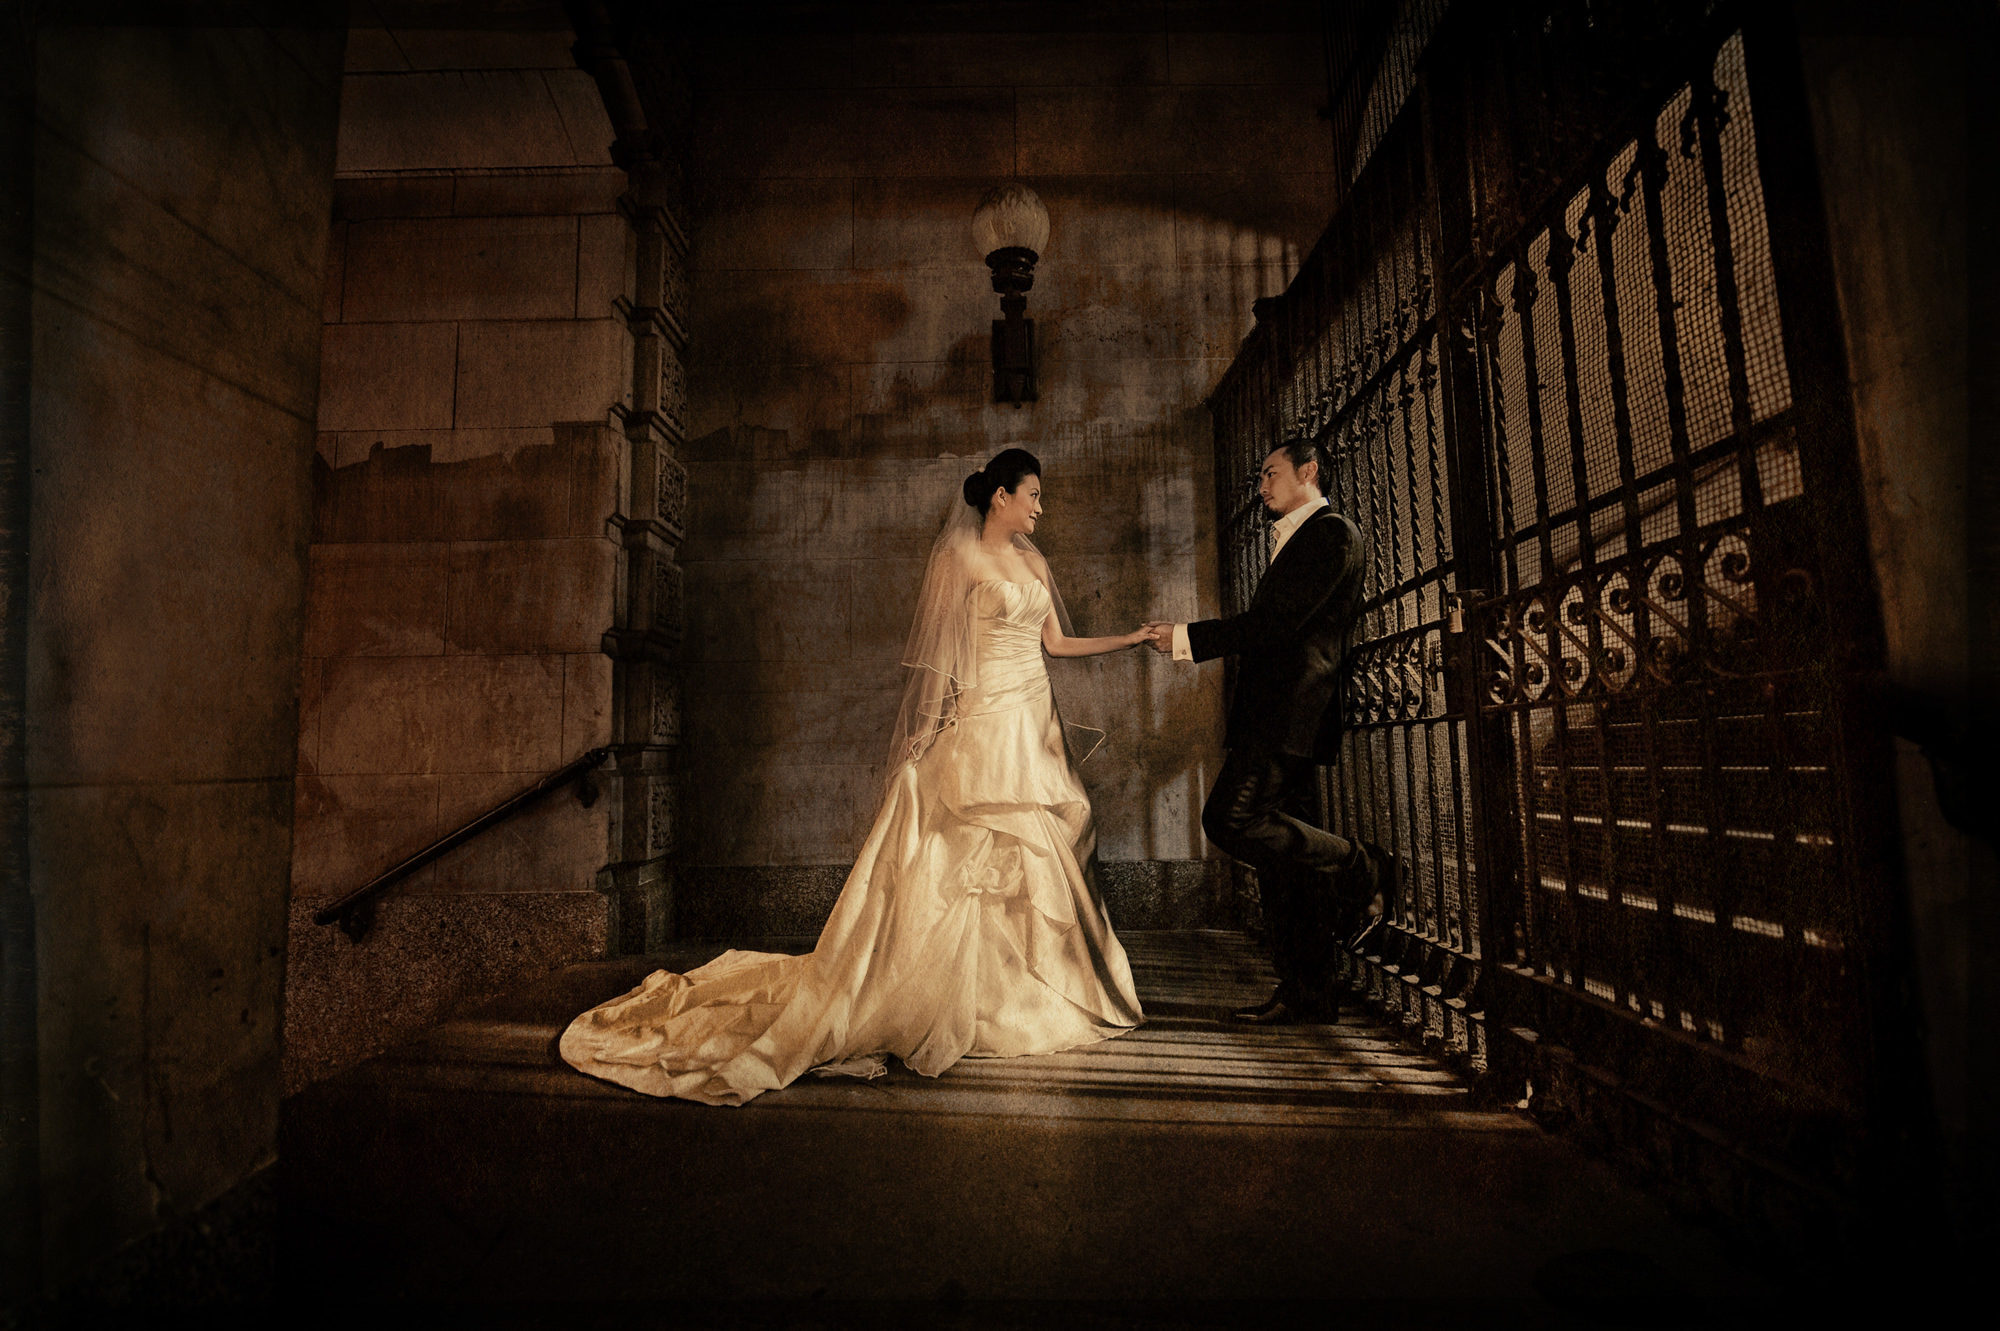 Vintage portrait of bride in satin folded gown with groom on stairs, by Cliff Mautner